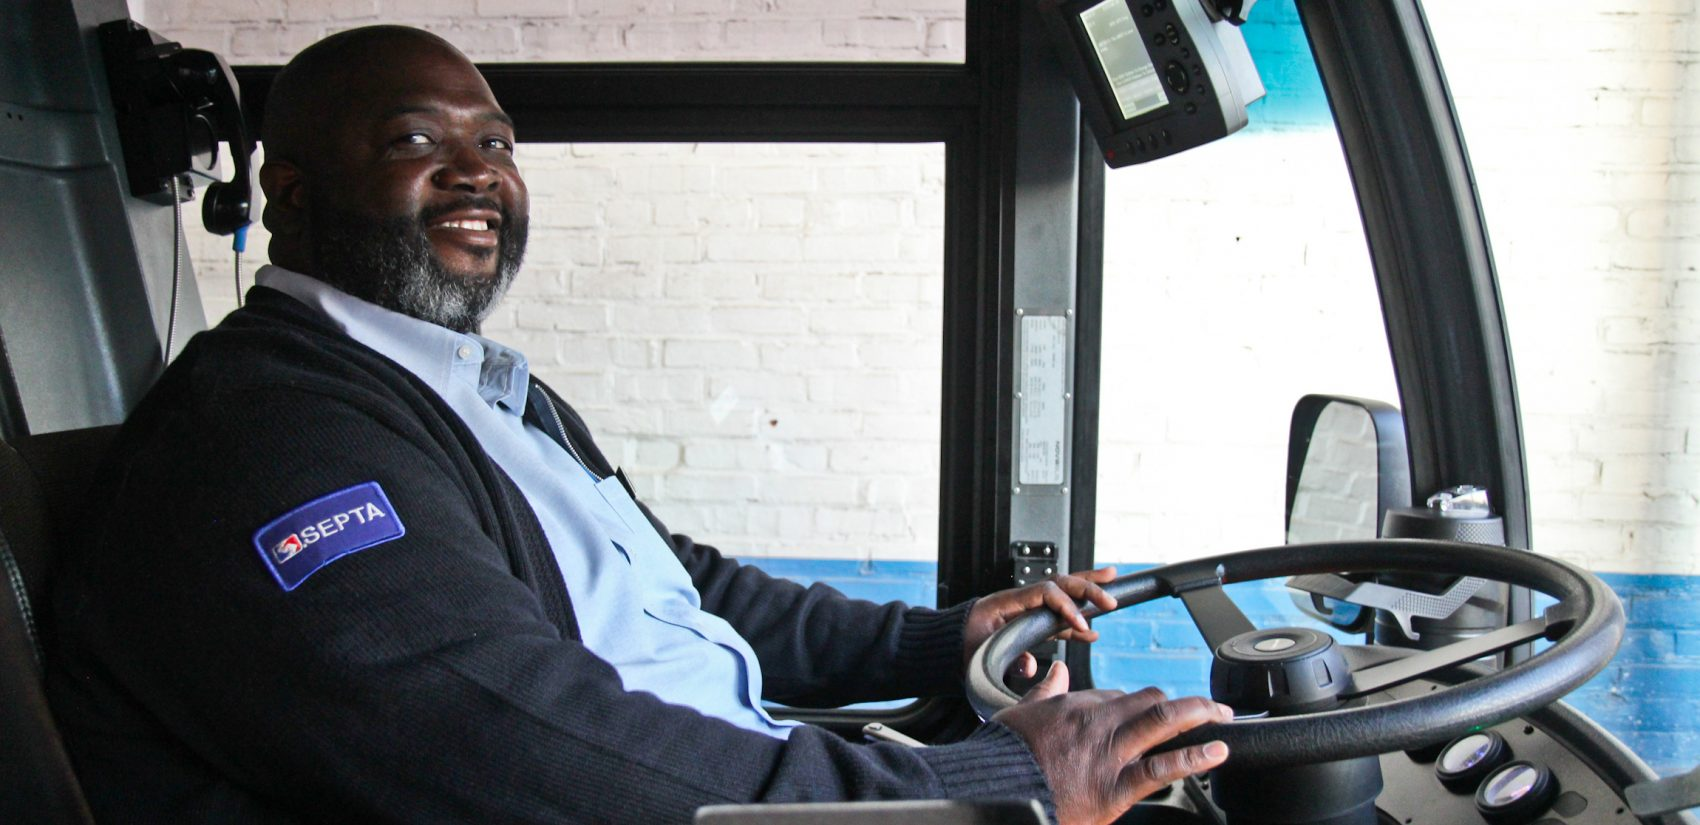 SEPTA driver Zach Chapman hits the road after inspecting his bus in the morning. (Kimberly Paynter/WHYY)